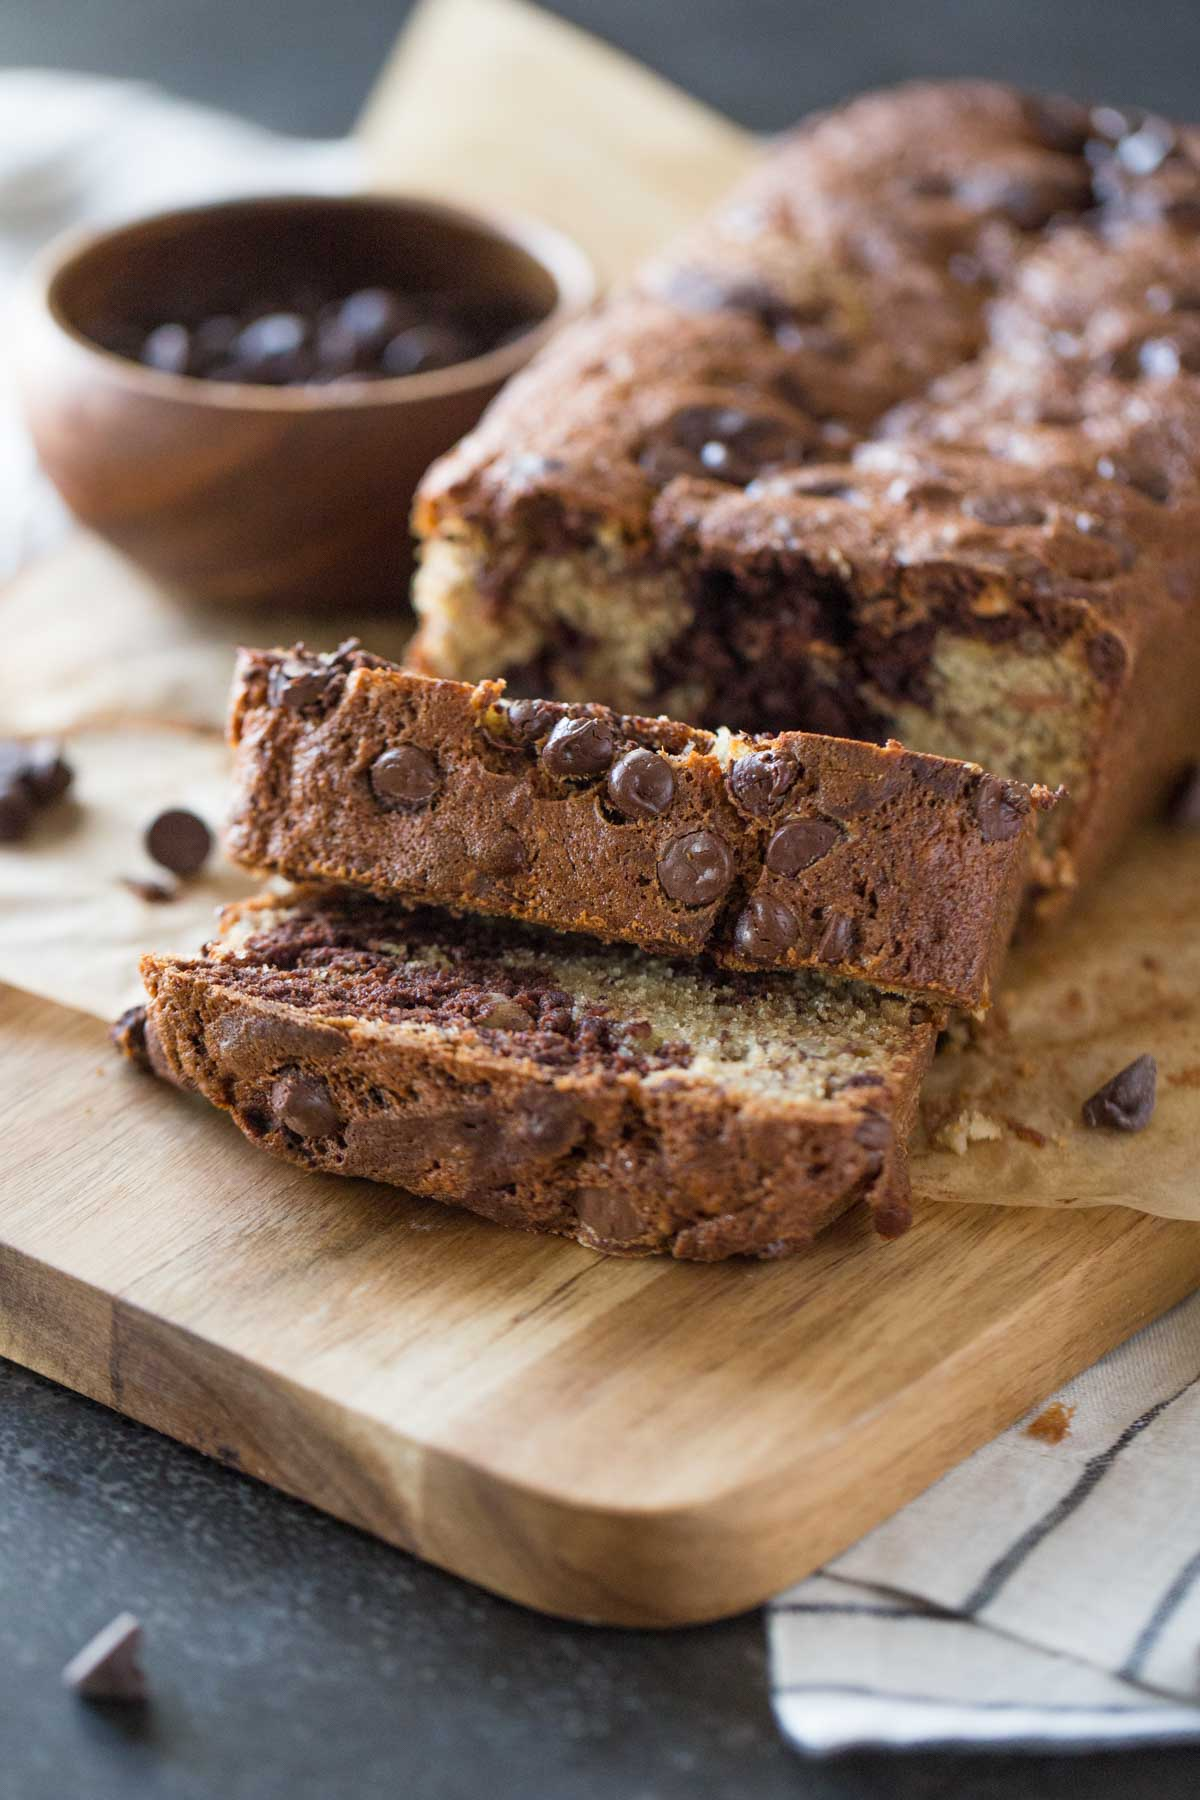 Chocolate and banana are so delicious together, and the texture of this bread with the delicate pieces of sliced almonds is just right!